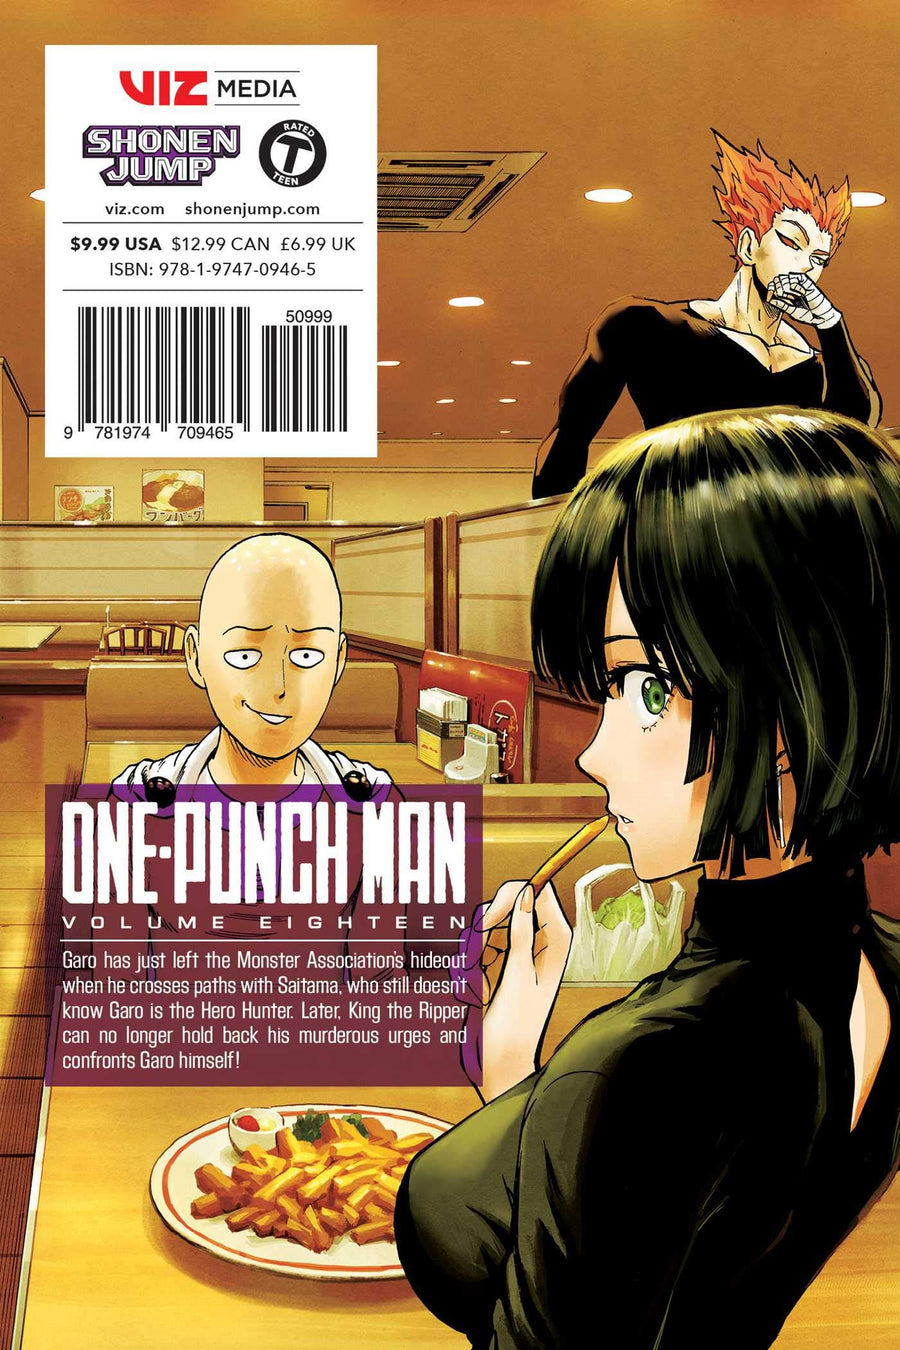 One Punch Man Volume 18